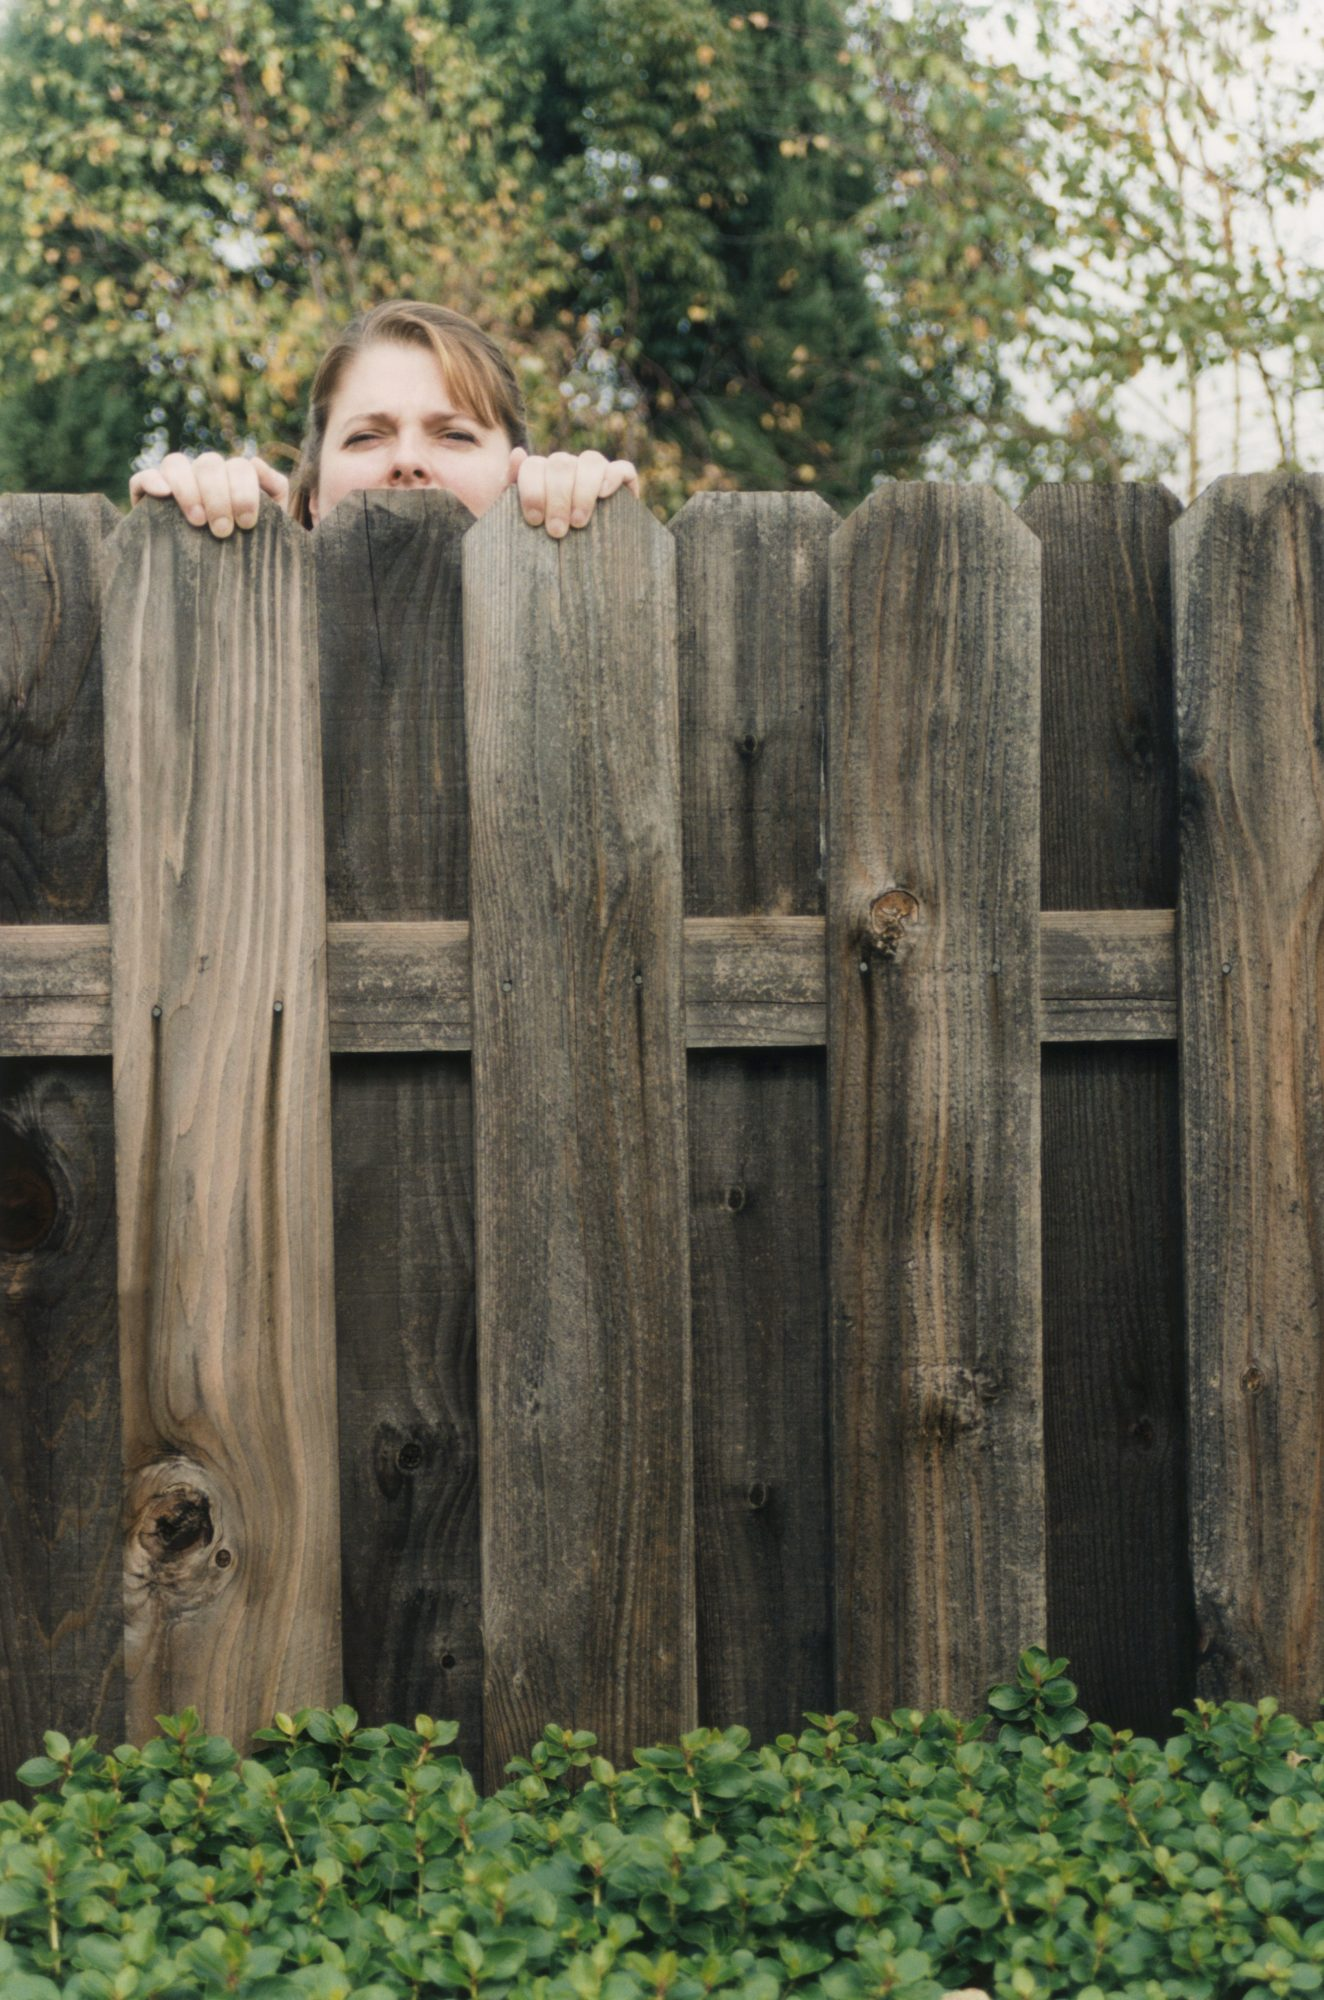 Woman peering over fence